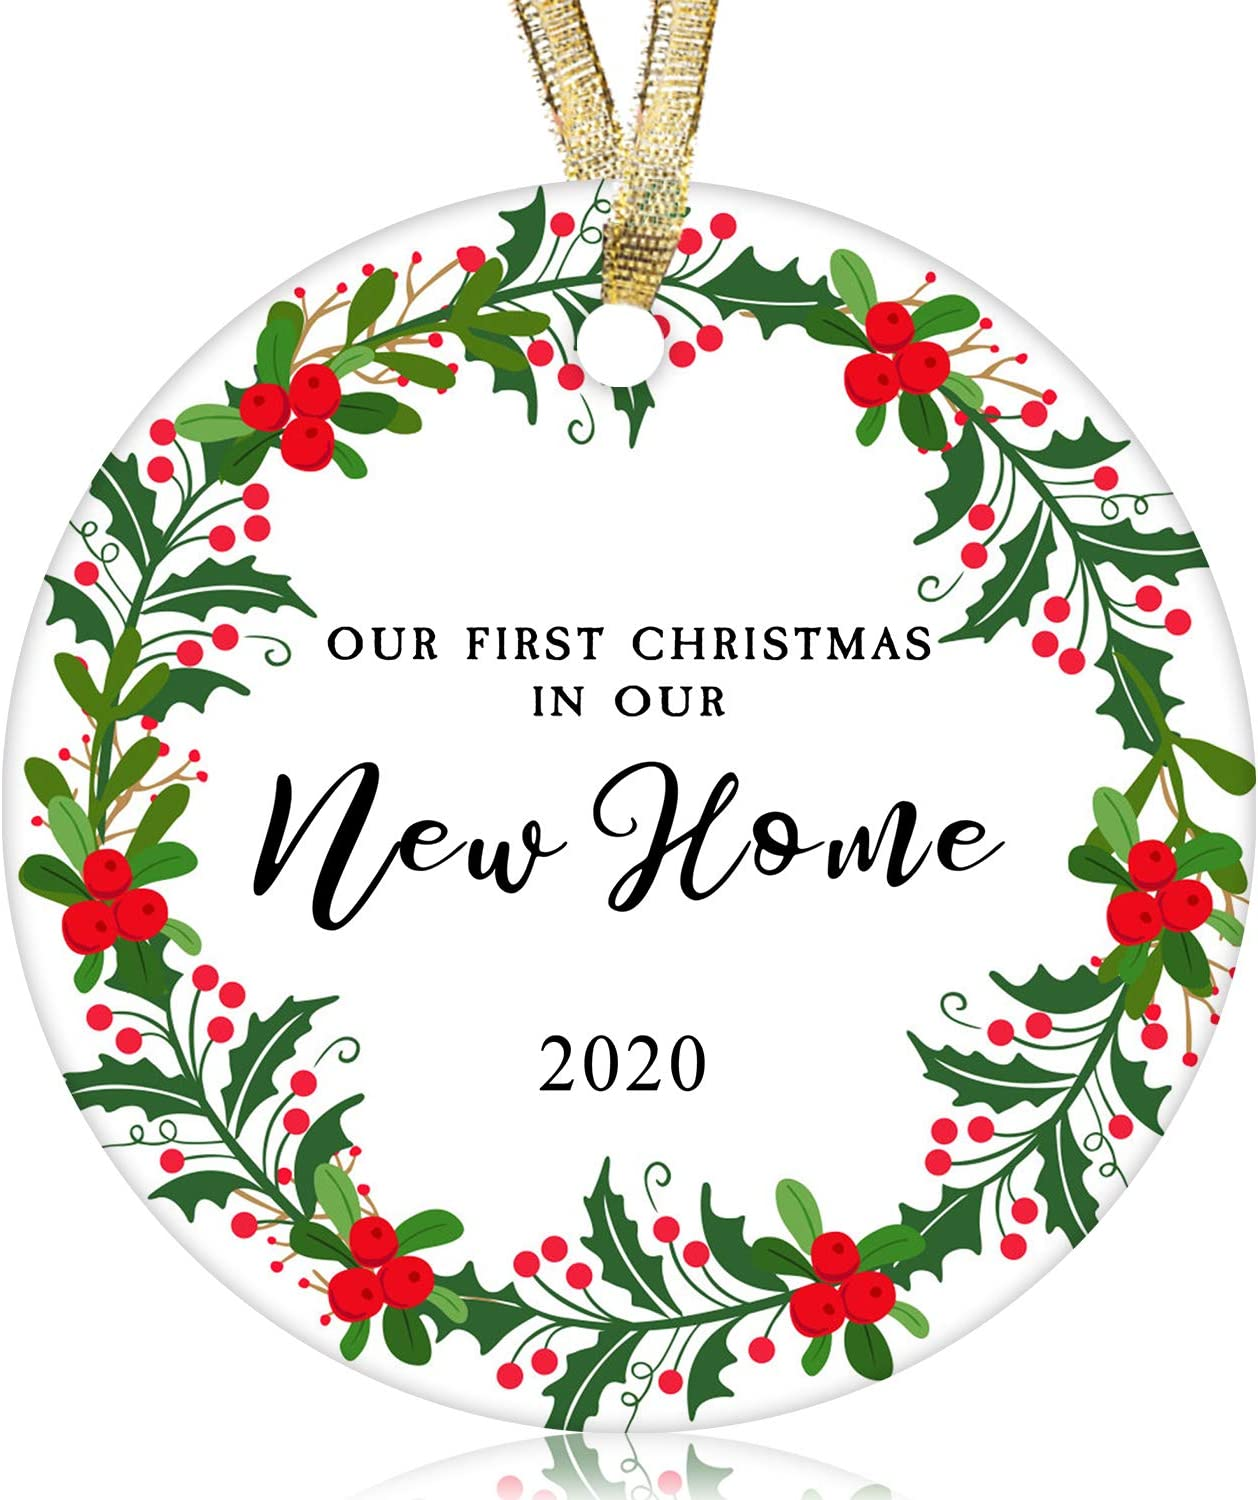 "NURIONSS Our First Christmas in Our New Home Ornaments 2020 - Christmas Wedding Decoration Gift for New Home New Homeowner New Apartment - 2.85"" Ceramic Ornament(New Home 5)"